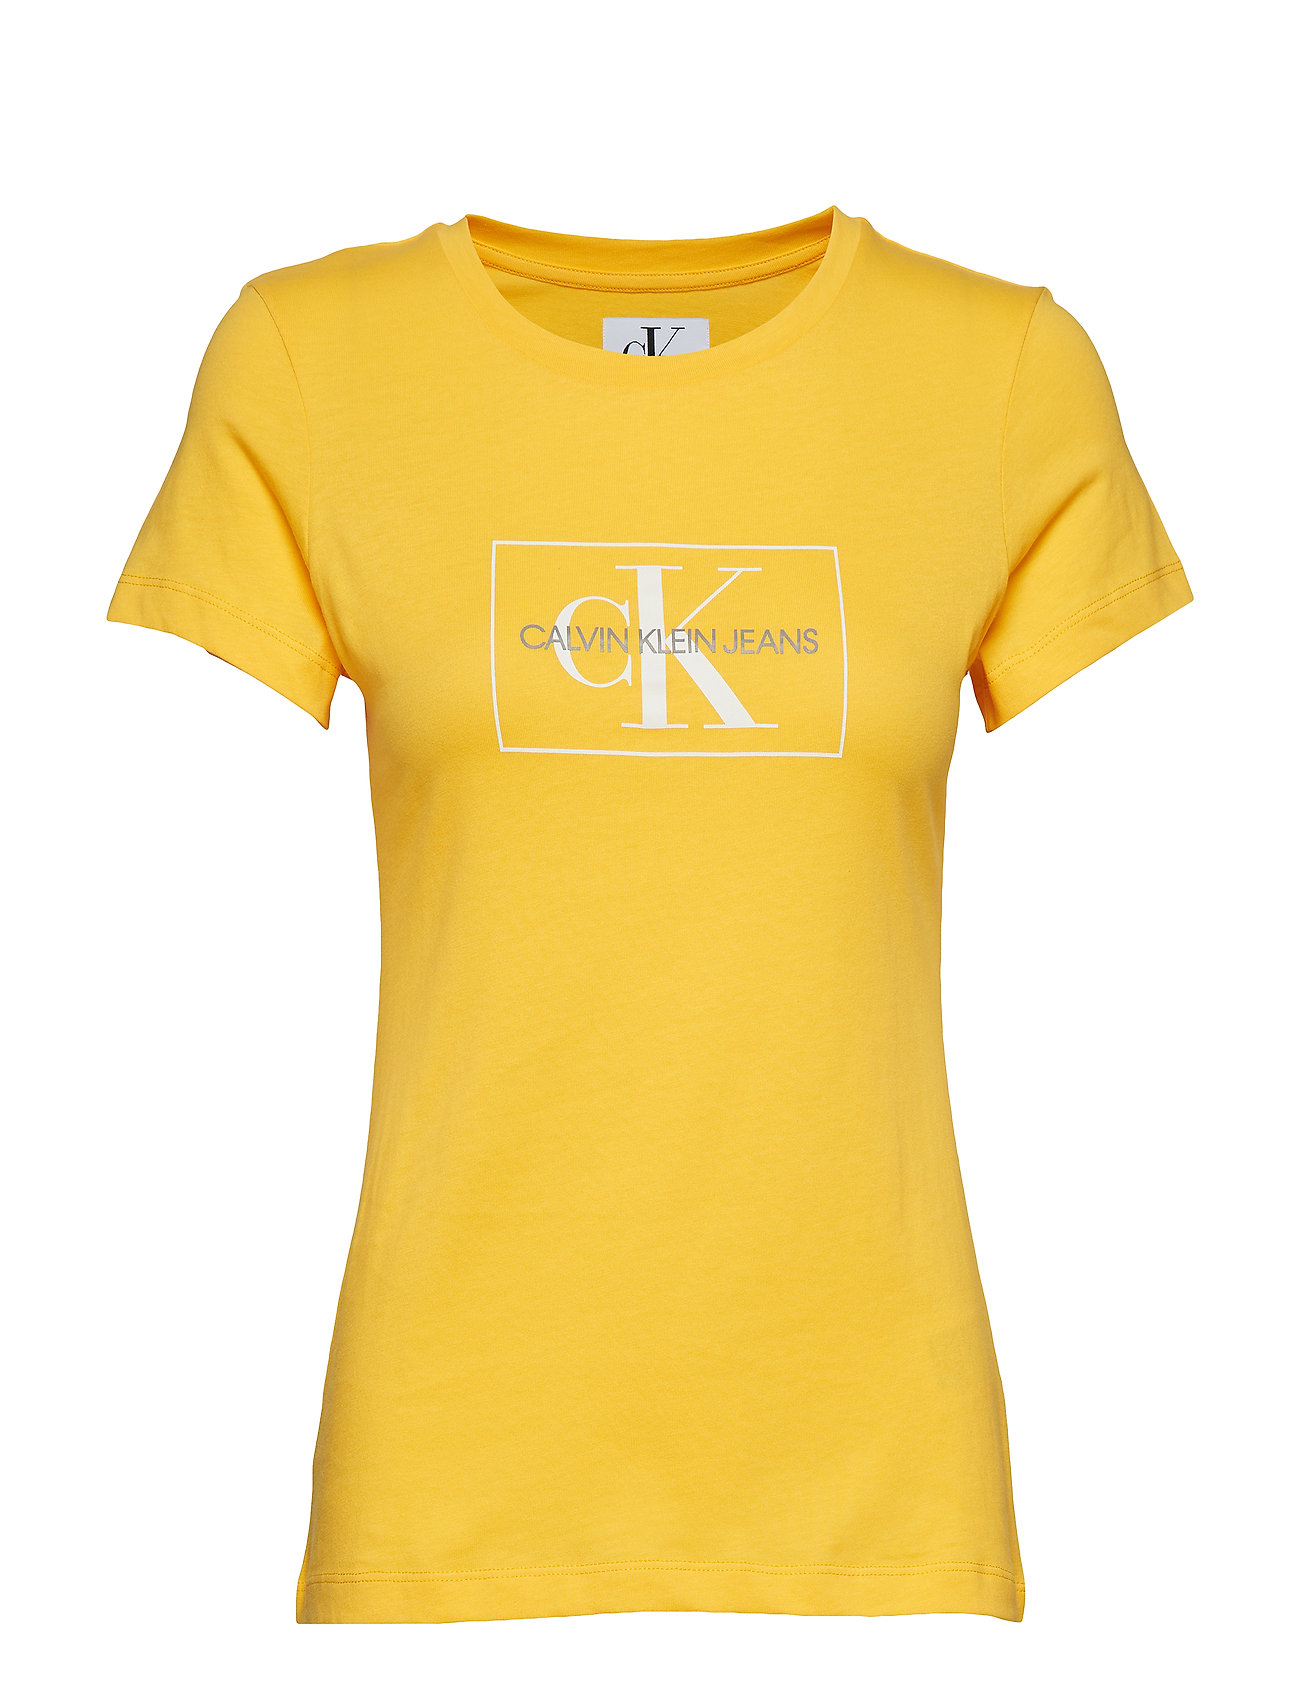 Calvin Klein Jeans OUTLINE MONOGRAM SLI - LEMON